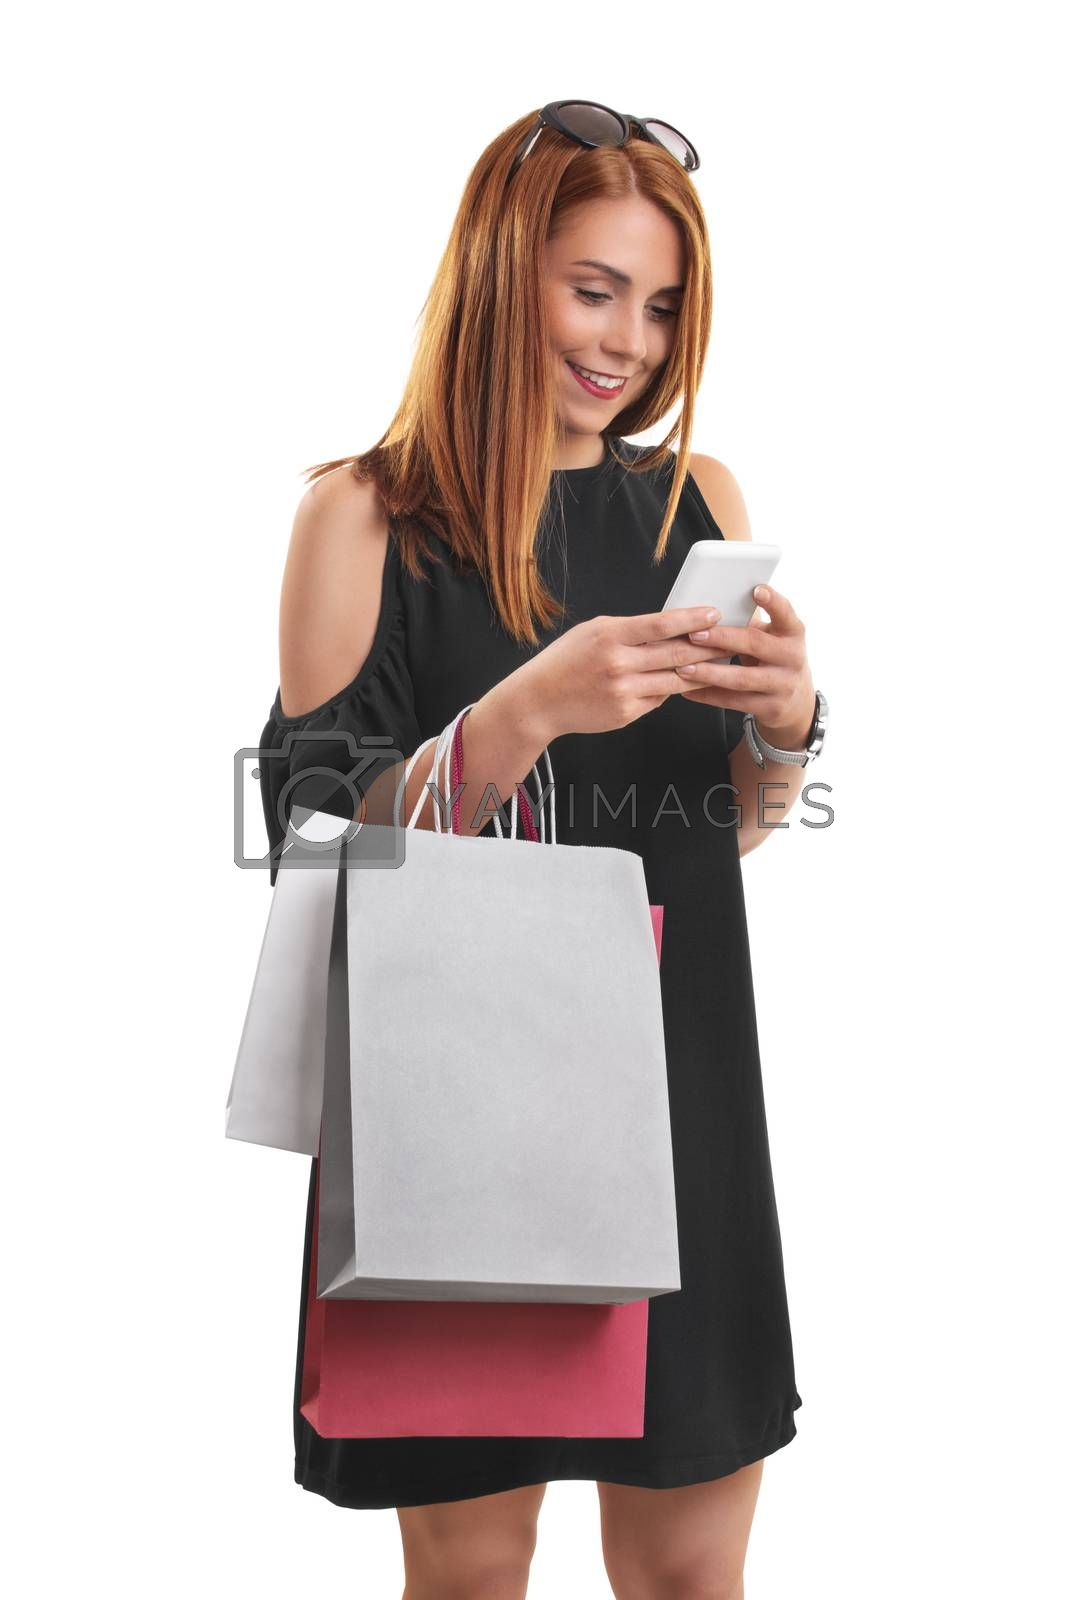 Portrait of a beautiful young girl in a stylish dress looking and typing at her phone, holing shopping bags, isolated on white background.